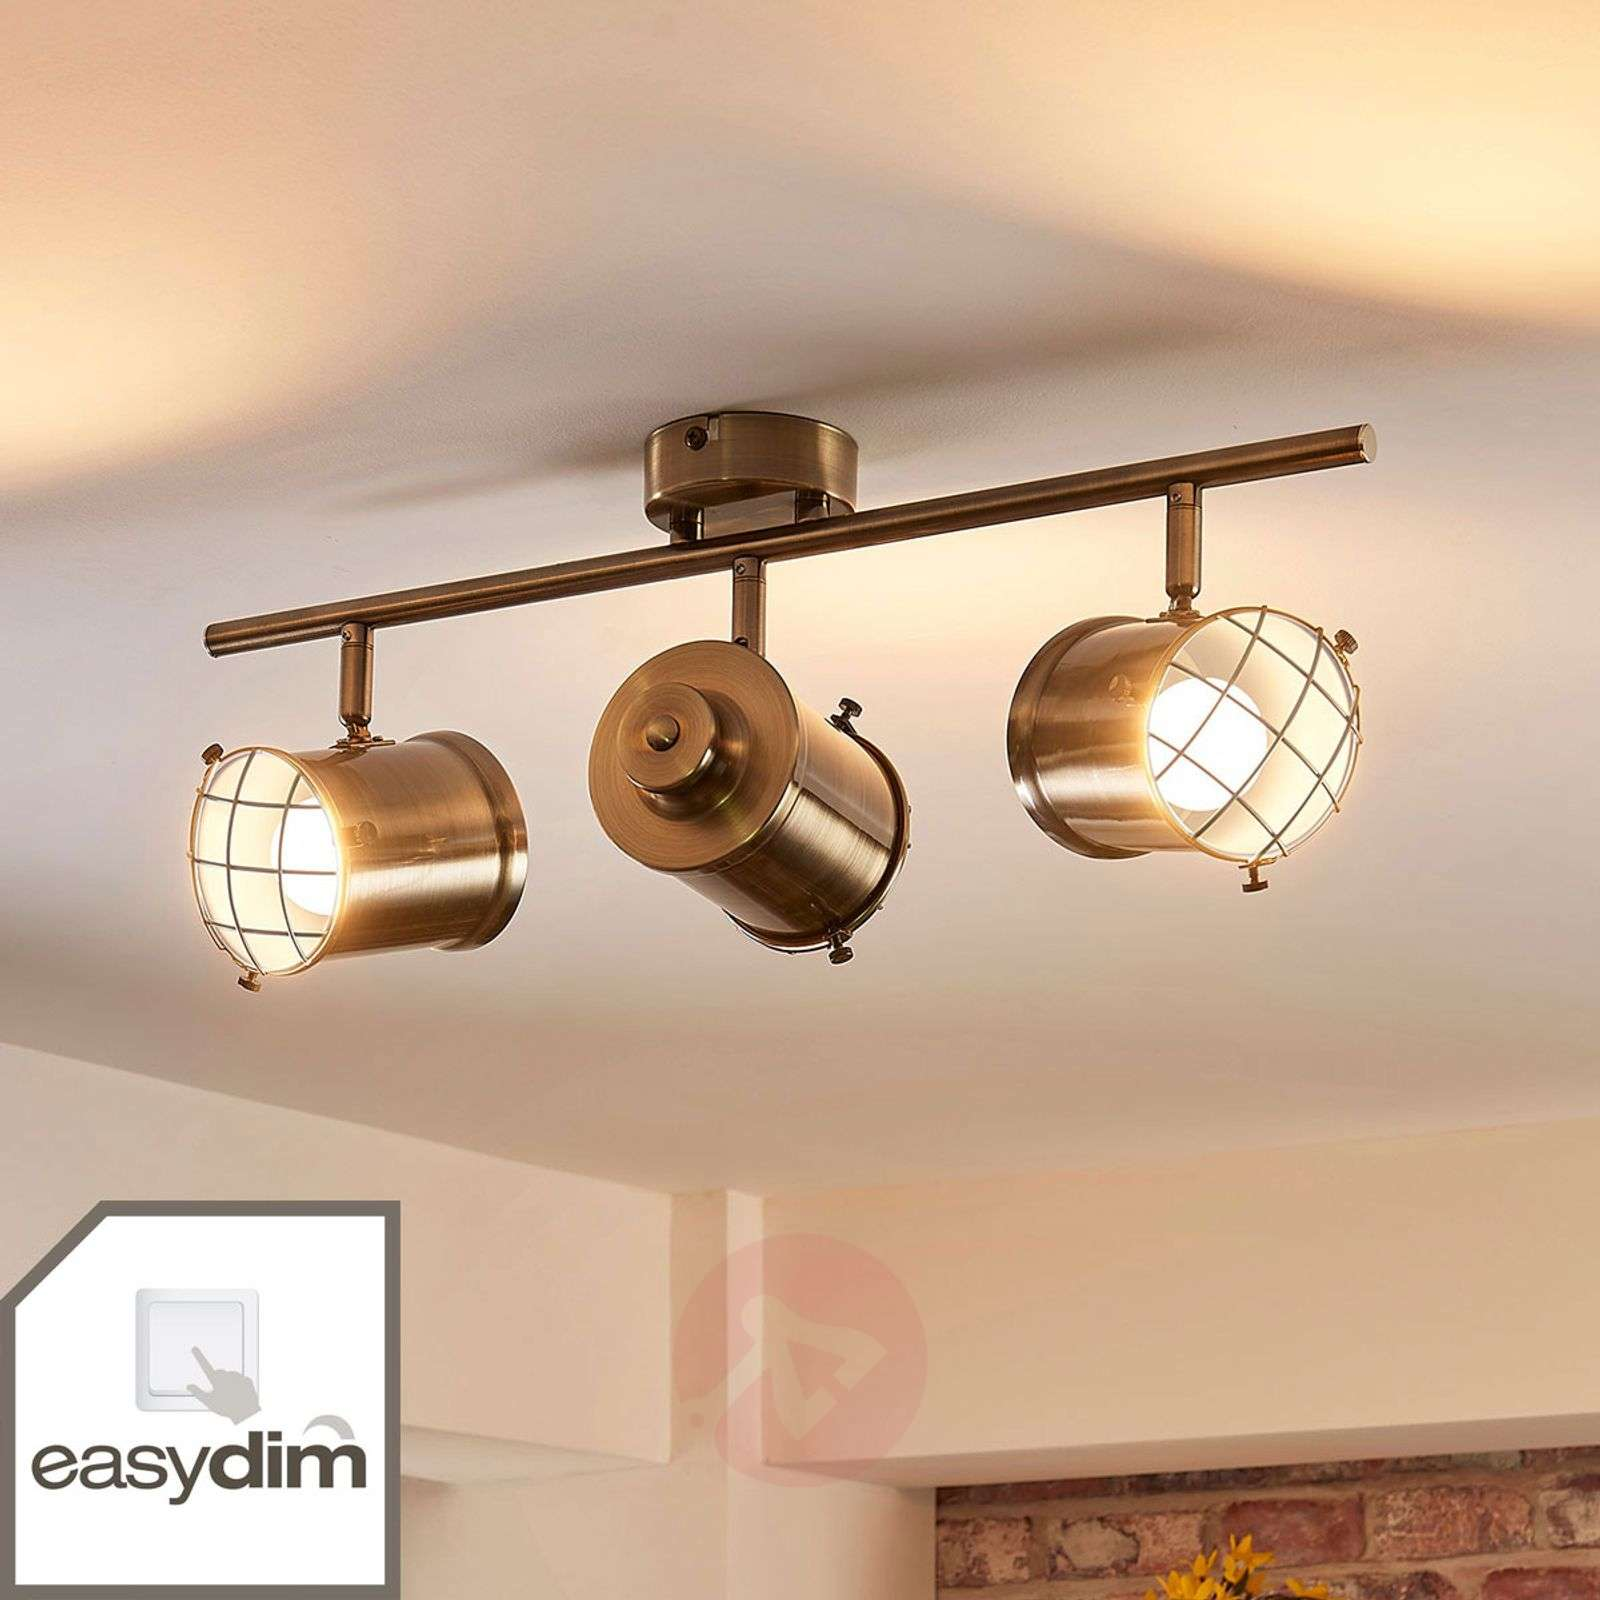 3-bulb Easydim ceiling lamp Ebbi with LEDs-9621230-02